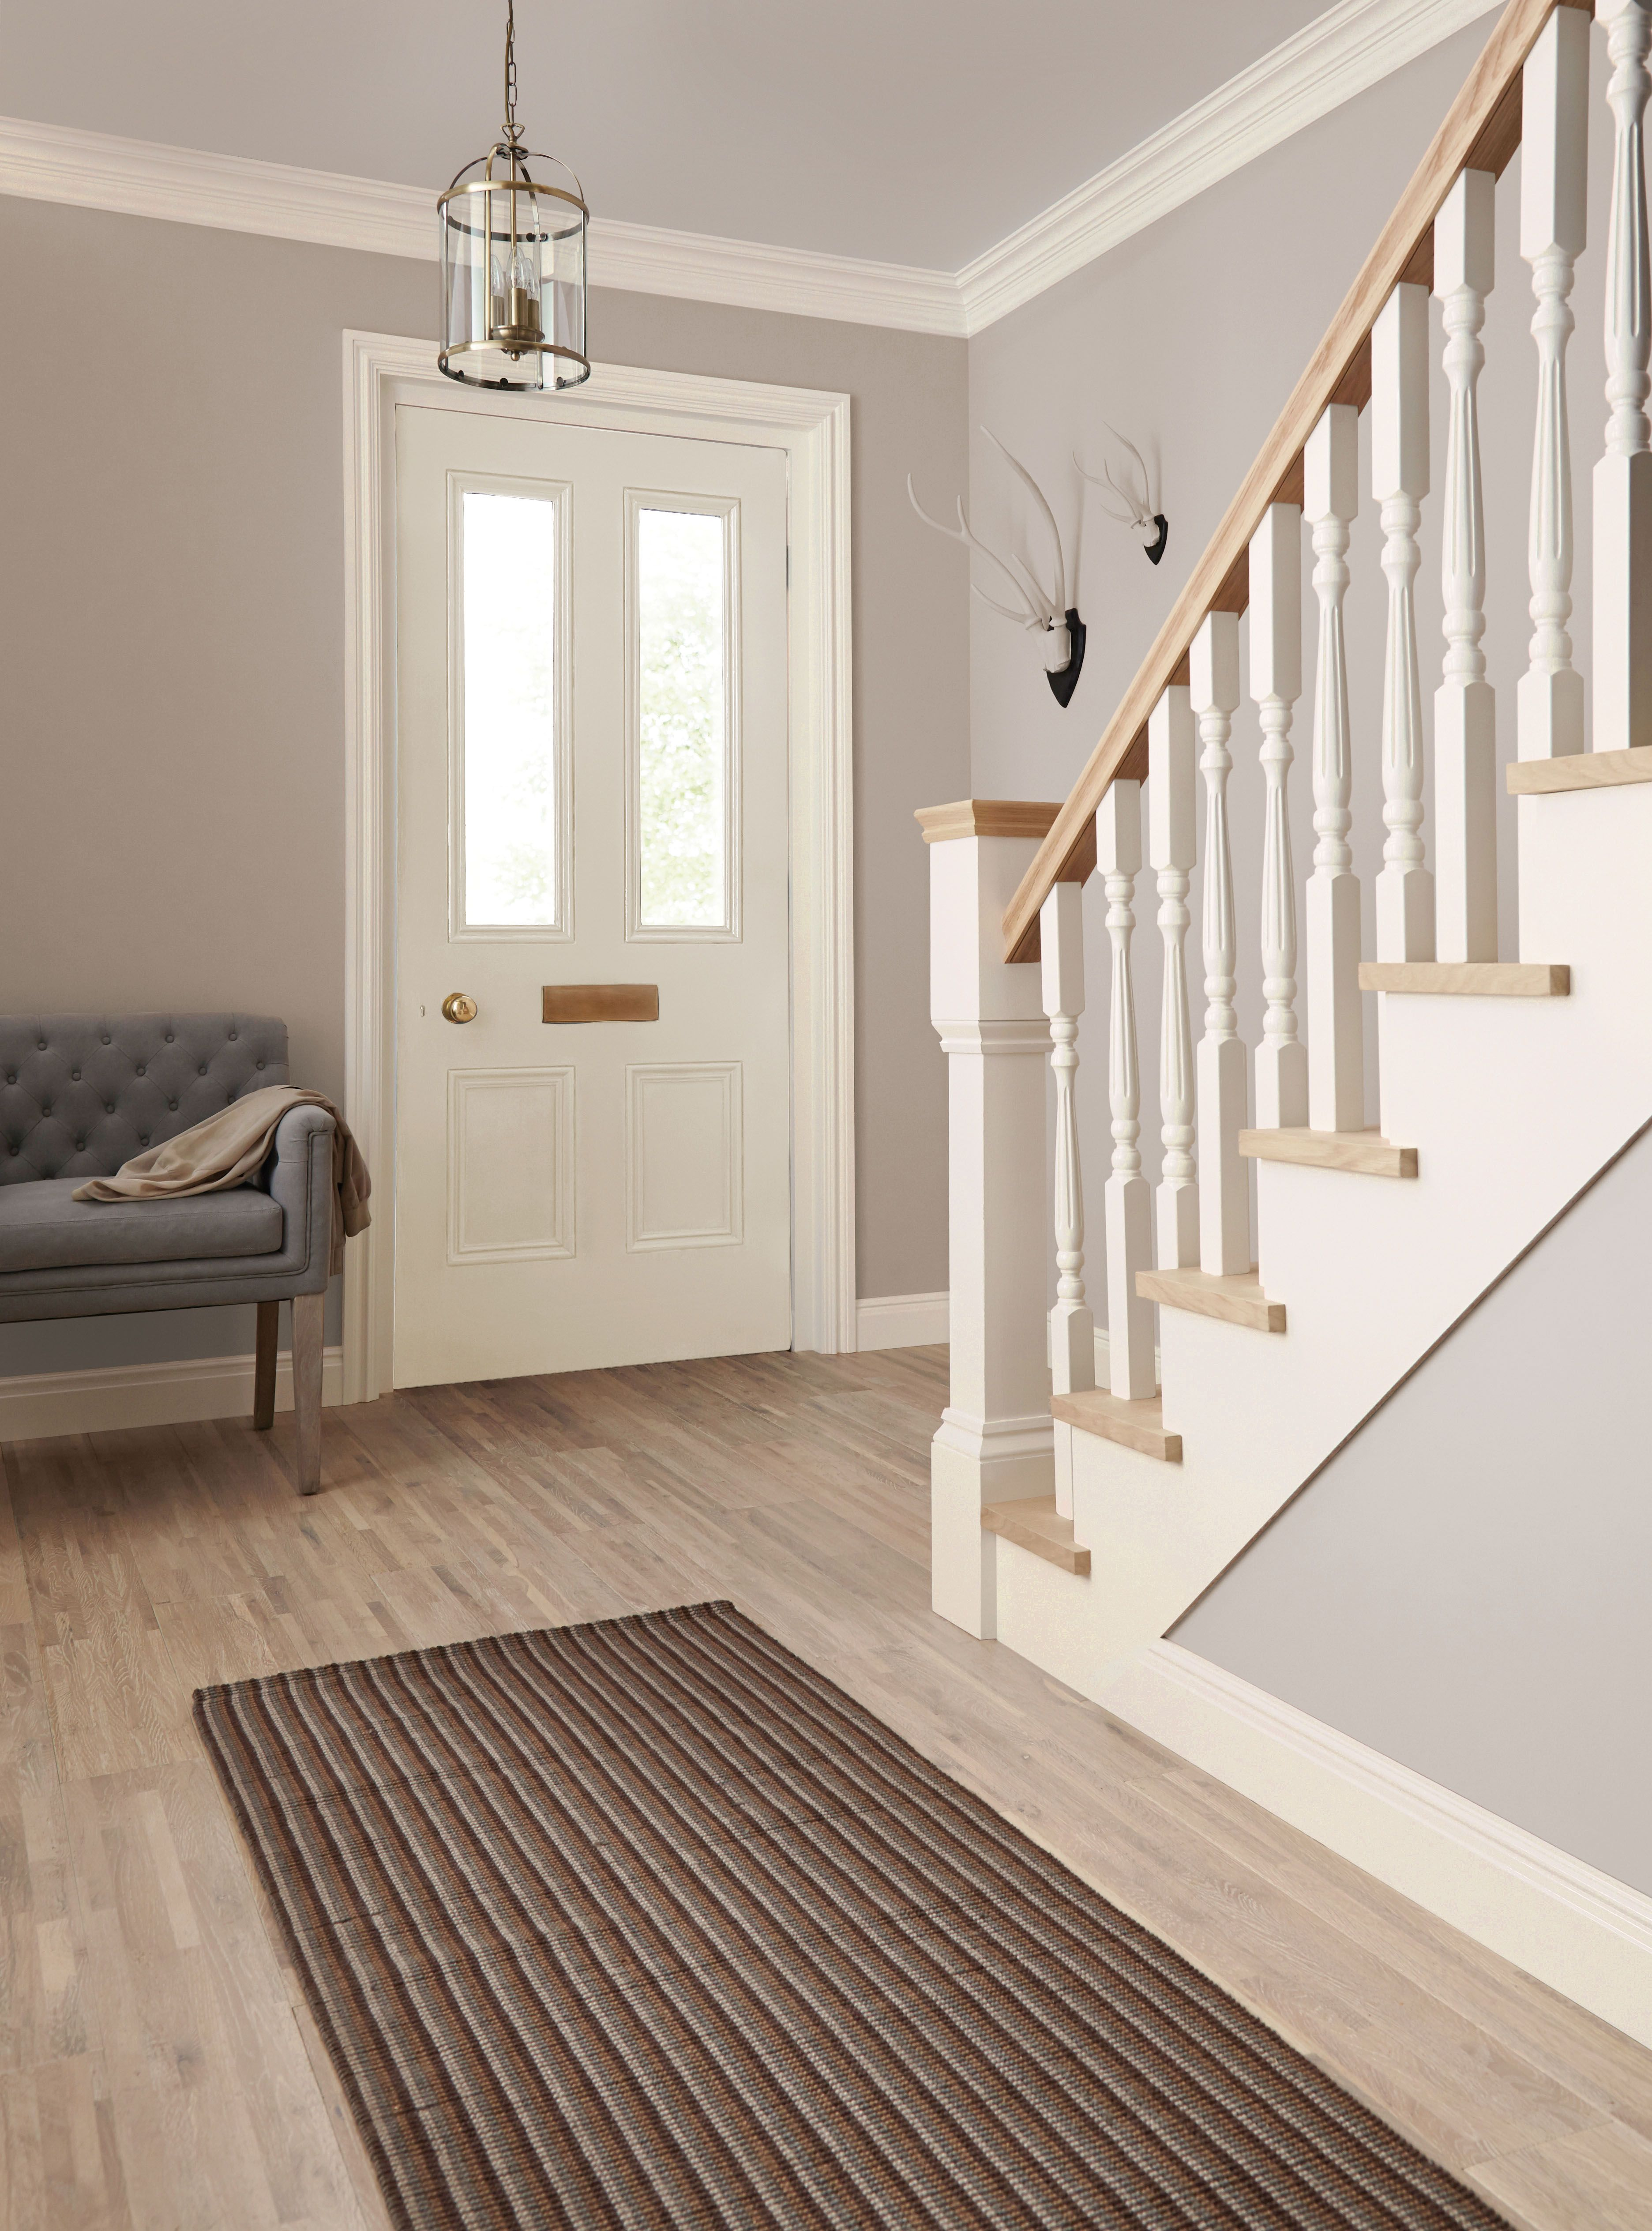 possible hallway or bedroom aged white from our new period collection order your sample